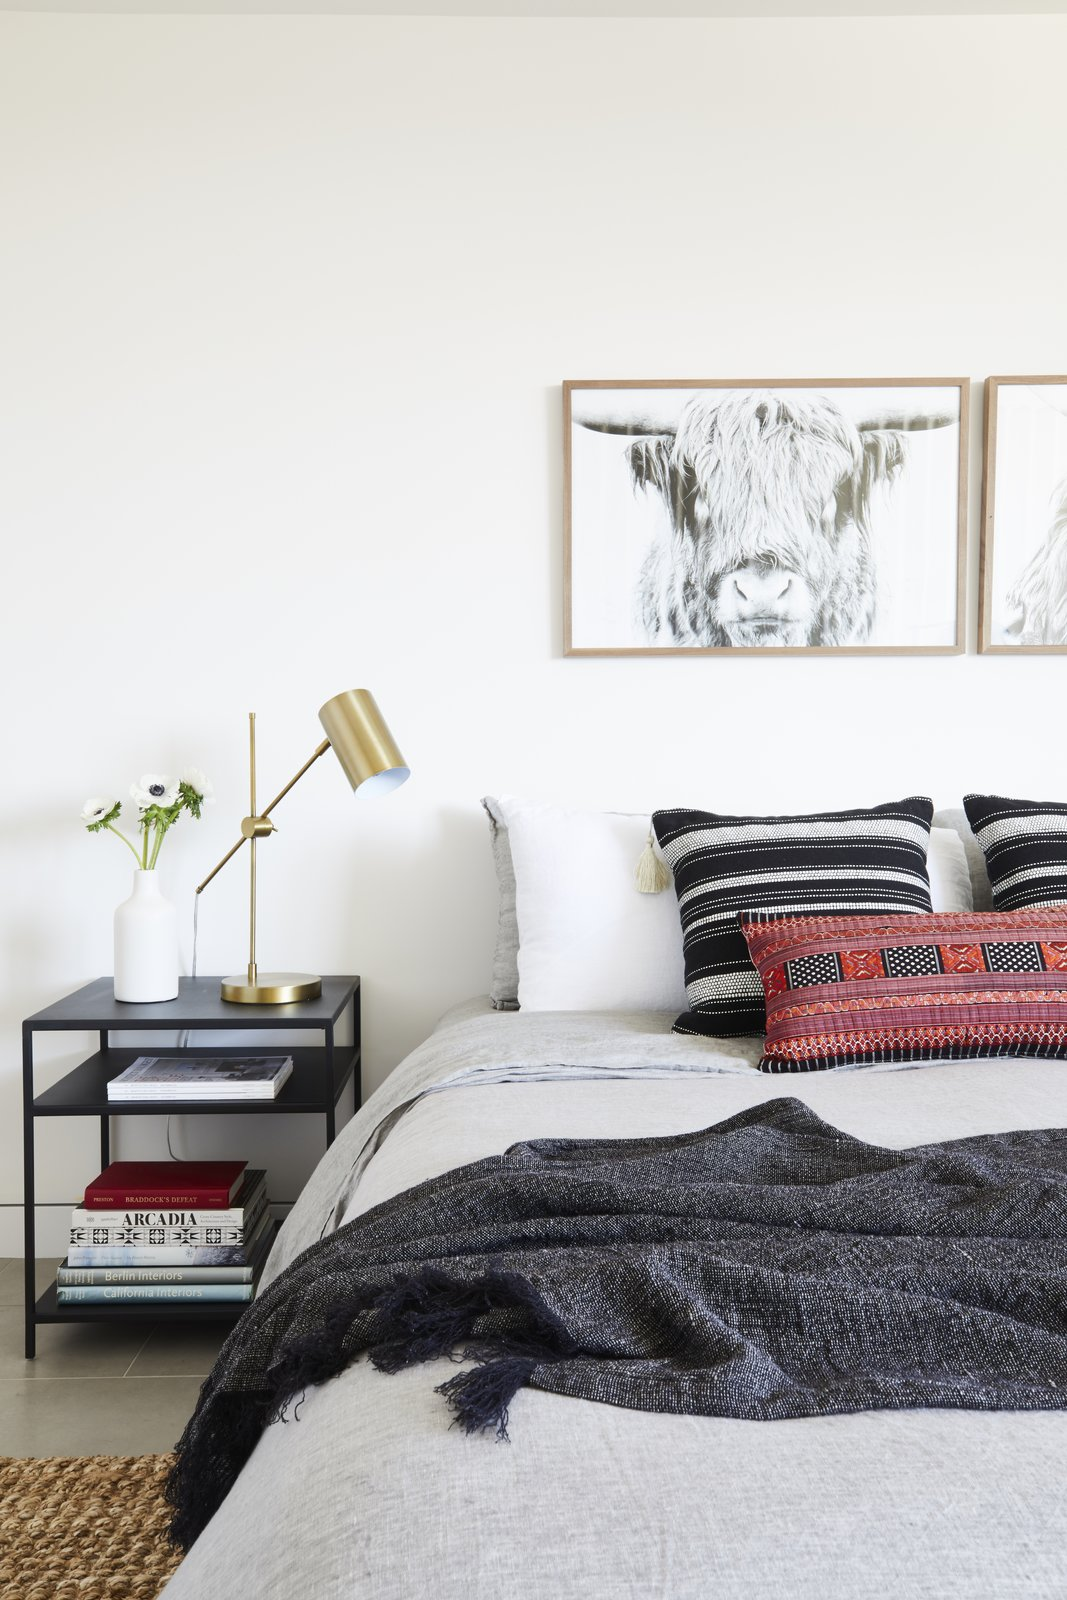 A Tim Gainey photograph of a Highland cow from Fine Art America sits above a red lumbar pillow by Amber Interiors and Restoration Hardware Bedding.